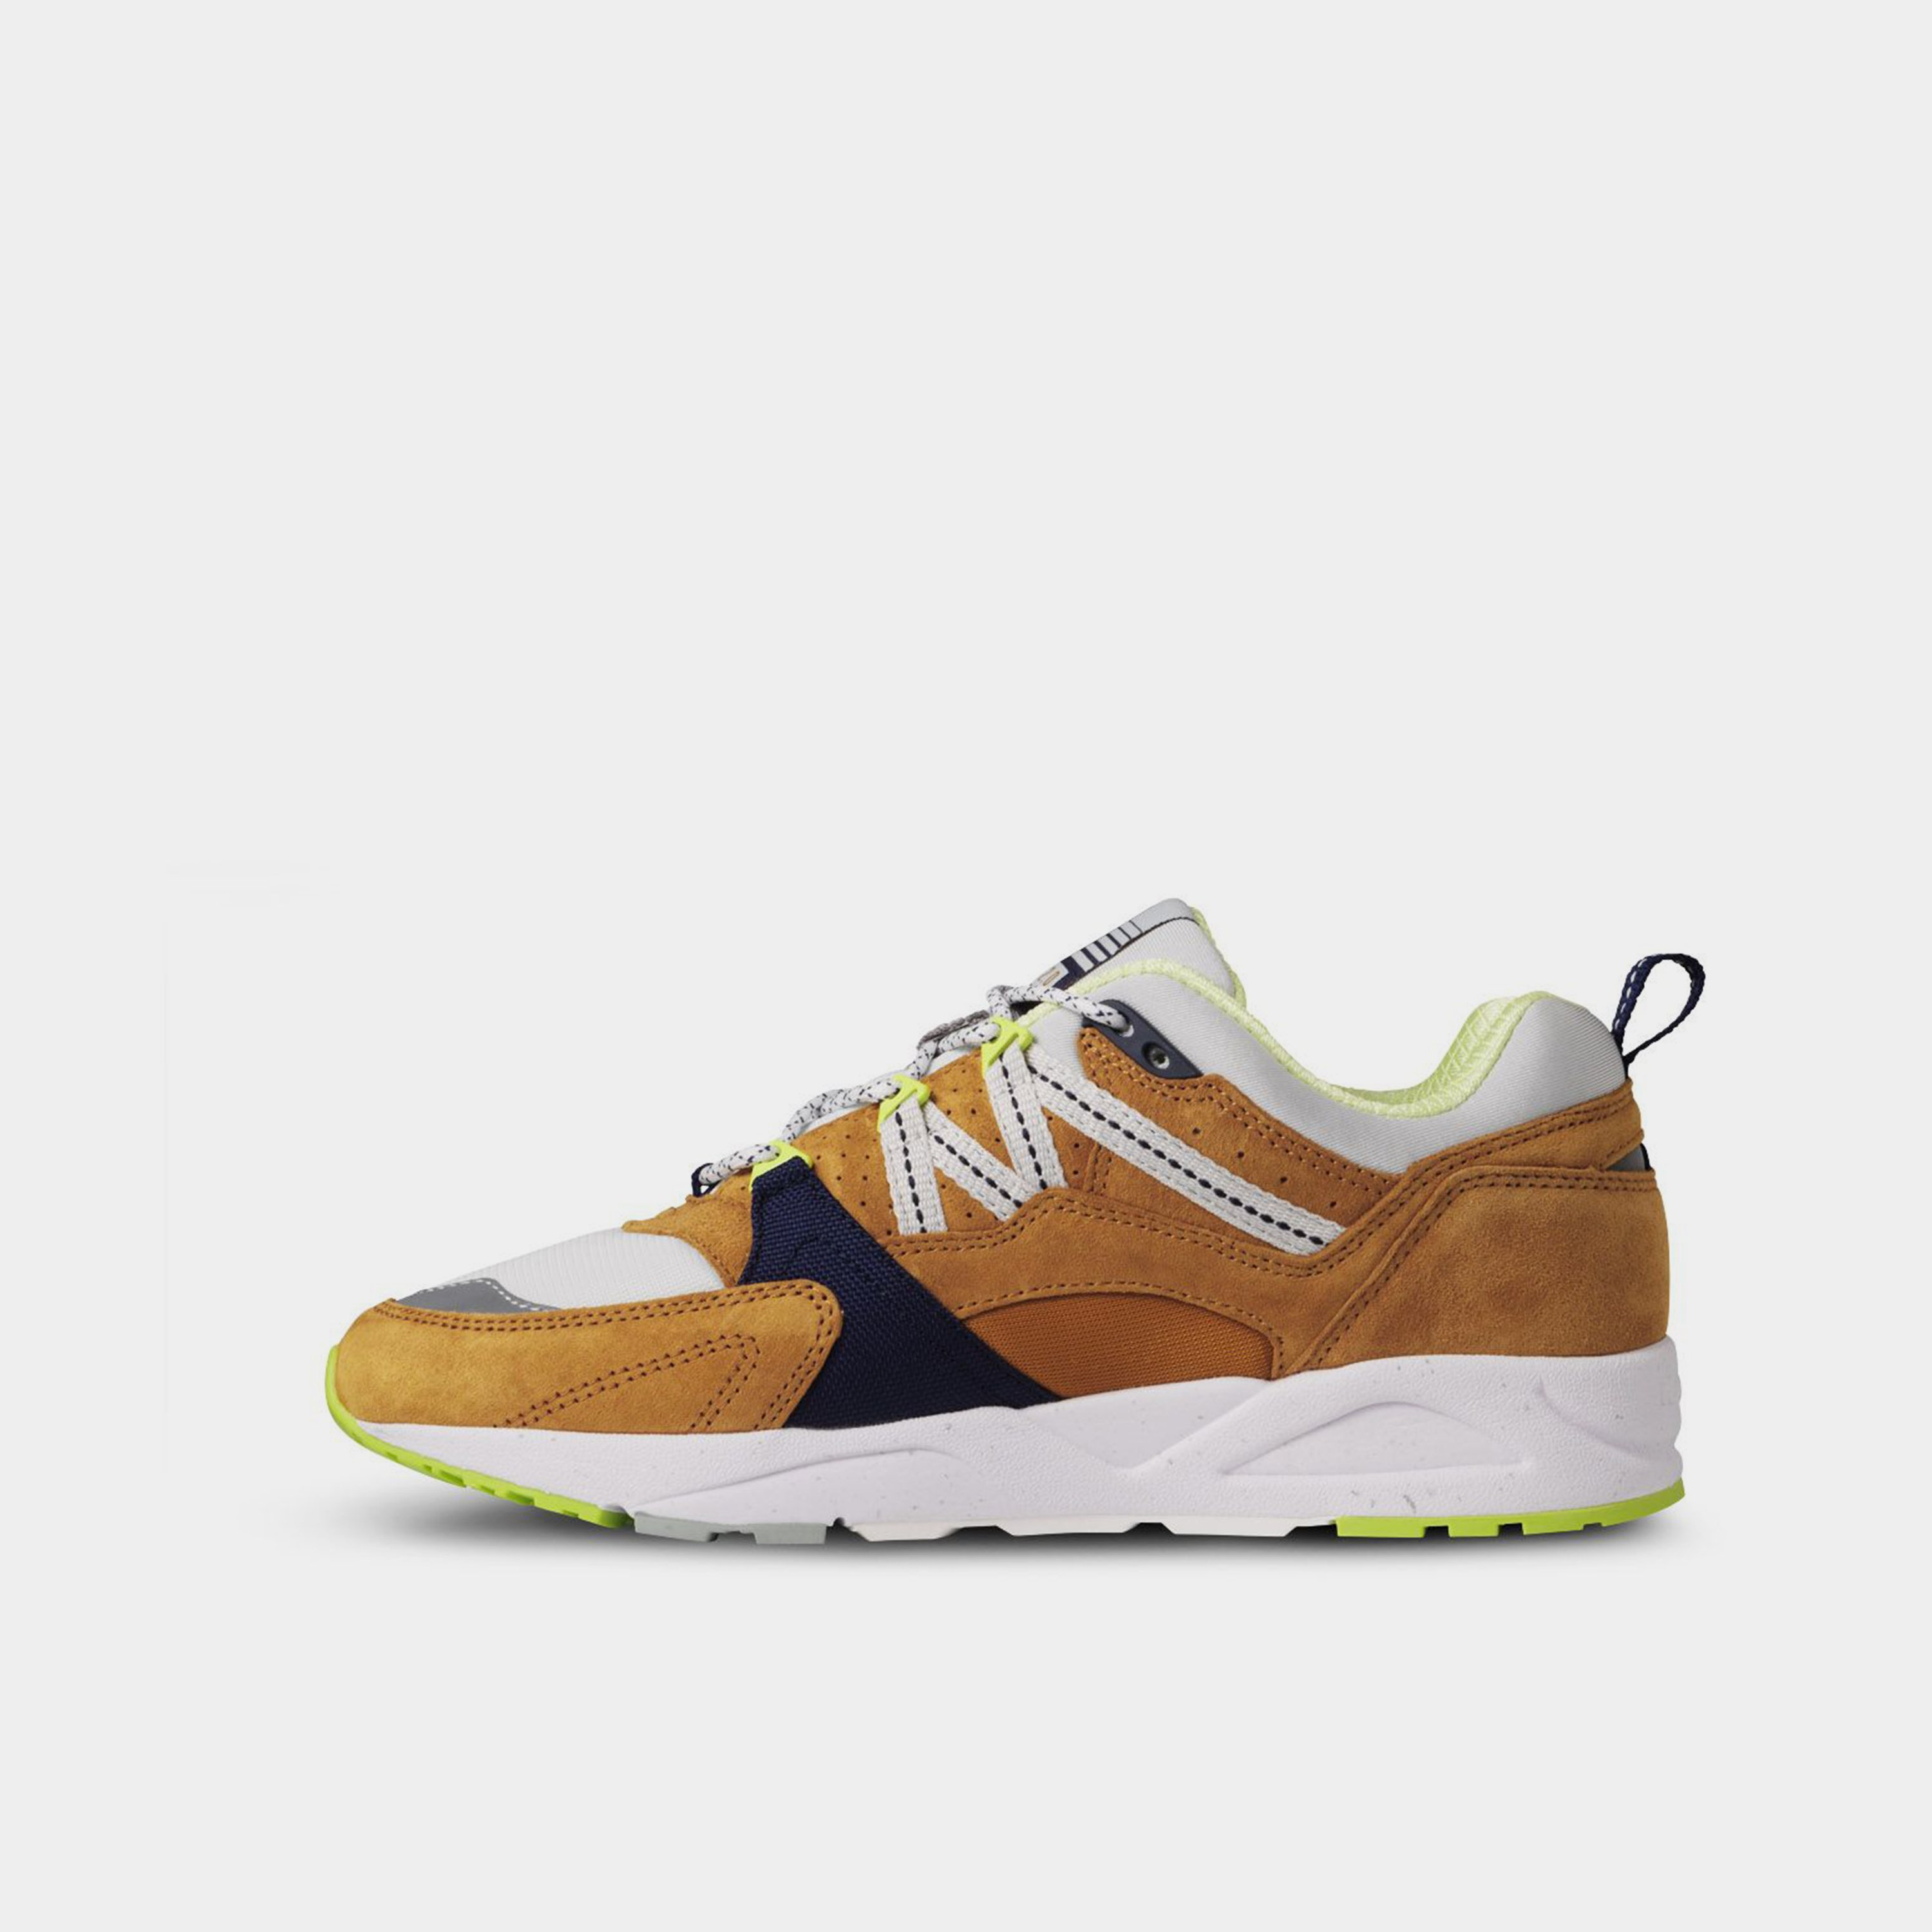 check out 62576 a9074 KARHU SCARPE FUSION 2.0 BUCKTHORN